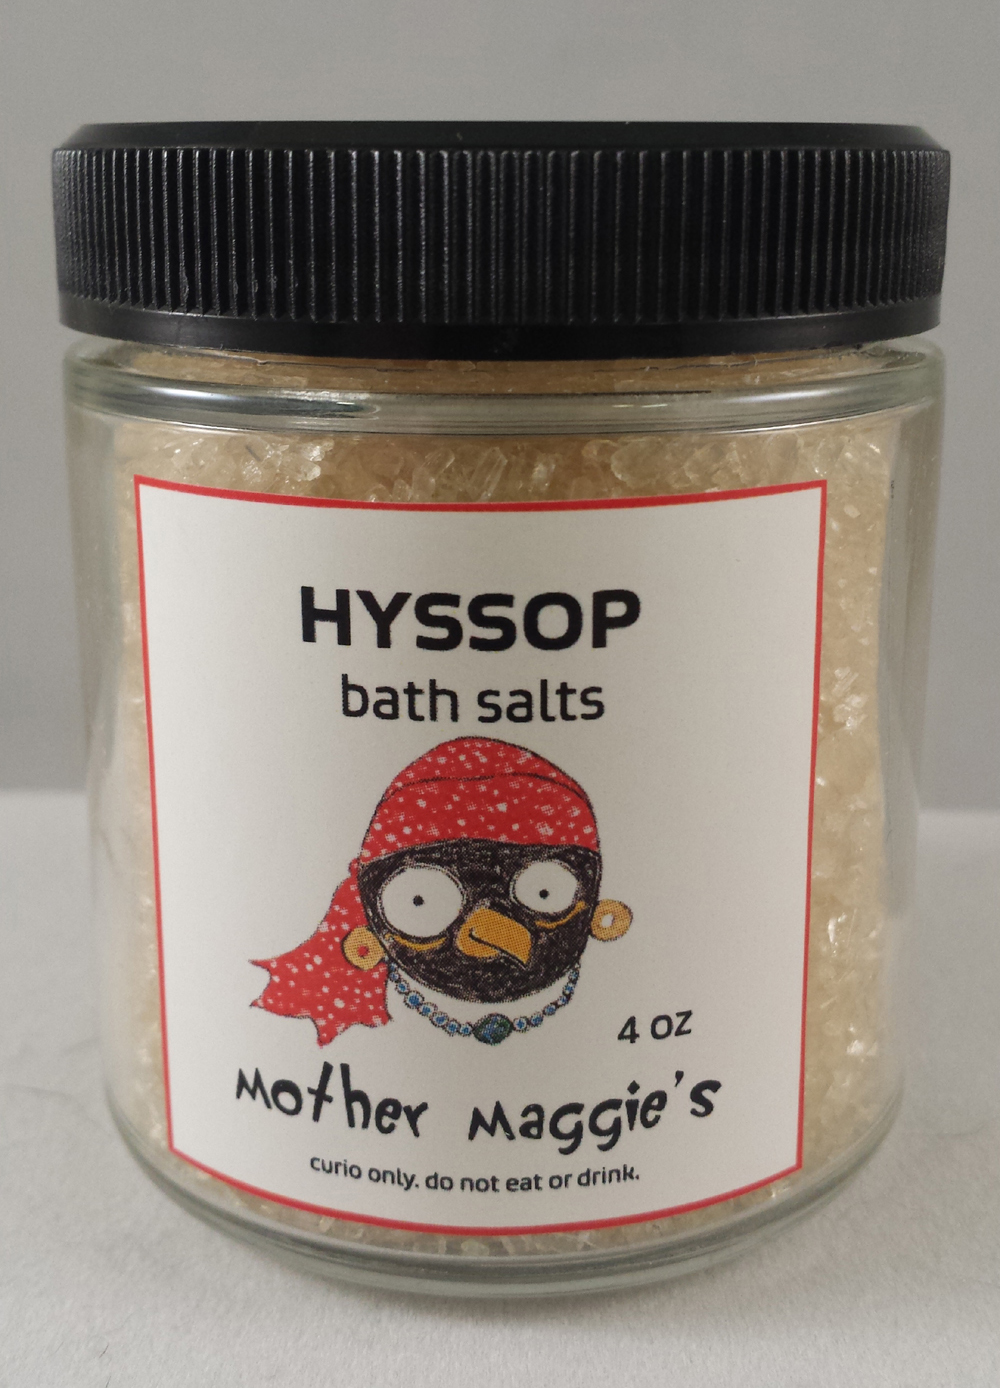 Maggie's Essential Bath Salts